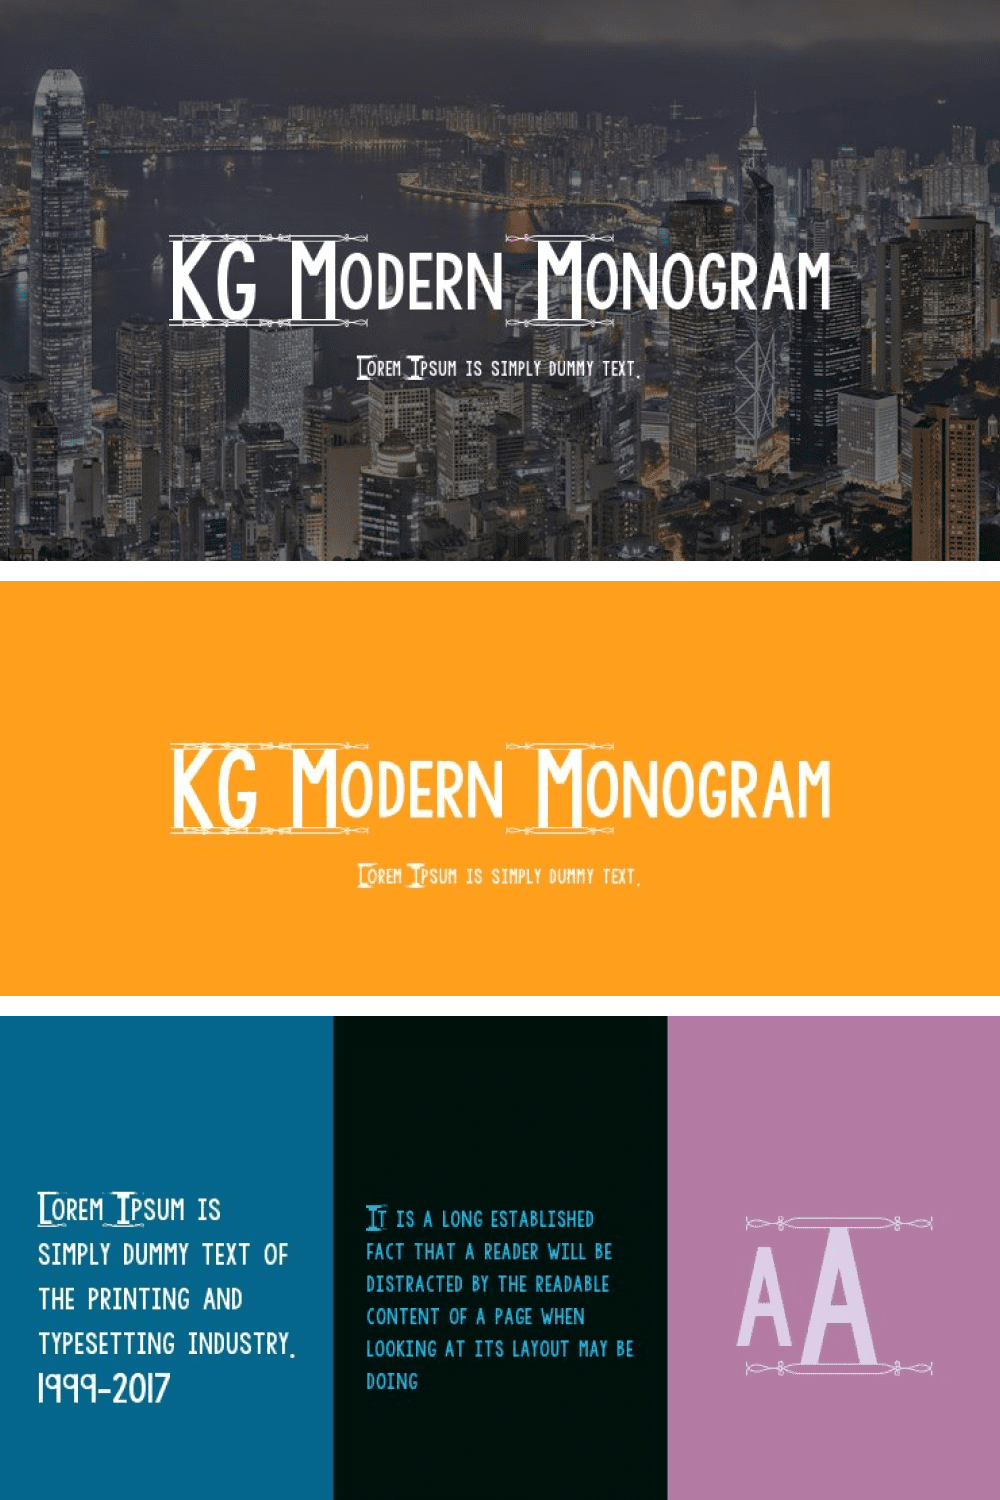 A non-trivial font in a modern style.